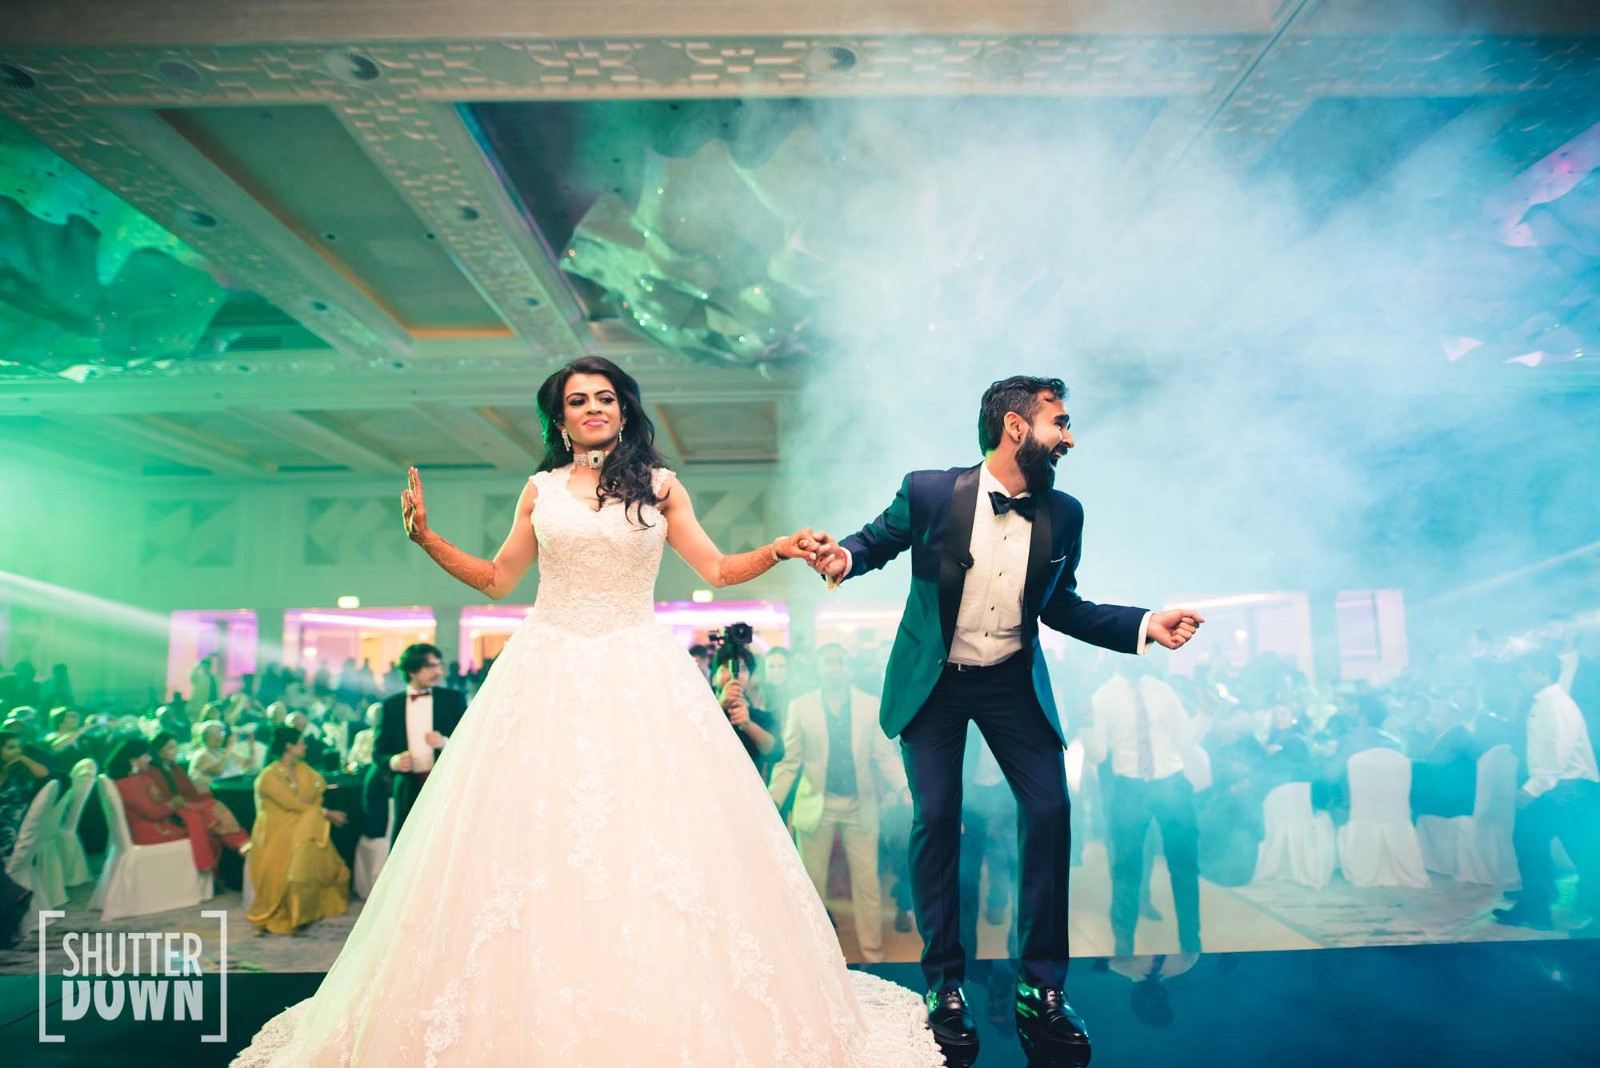 Get The List Of Latest Bollywood Songs For Your Wedding Night